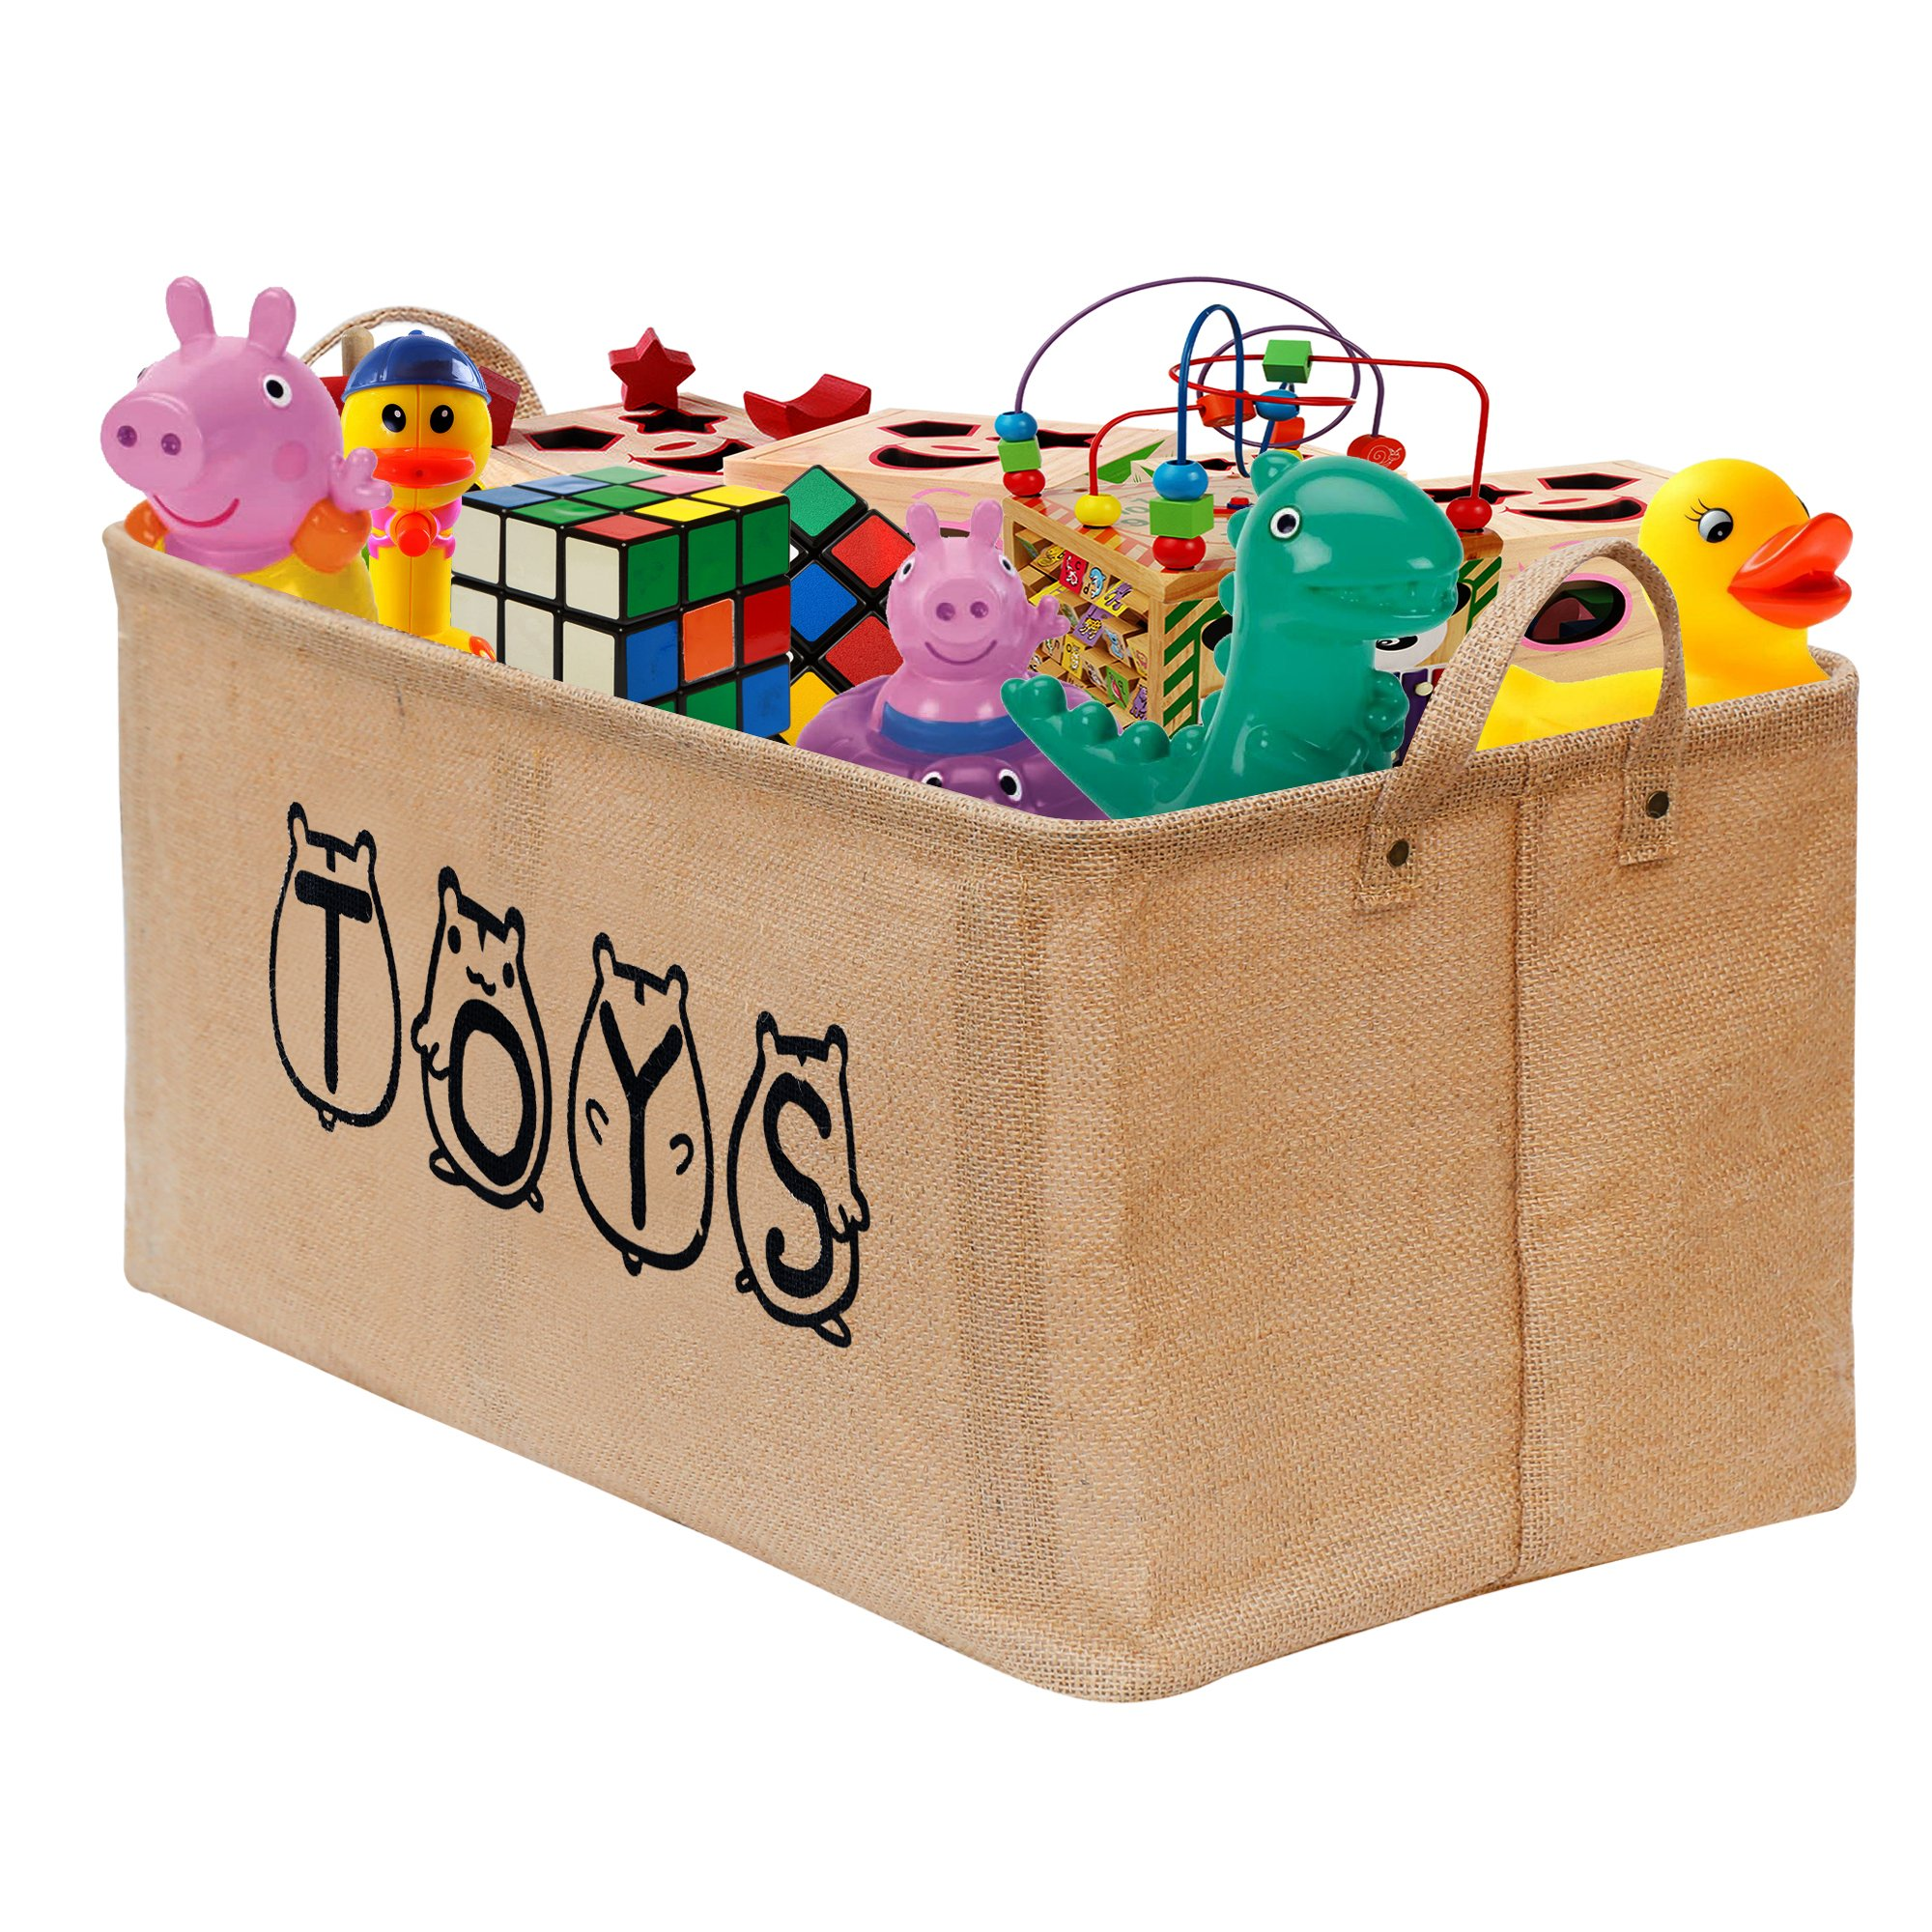 Gimars 20'' Cute Well Holding Shape Jute Toy Chest Baskets Storage Bins Organizer - Perfect for Organizing Toy Storage, Baby Toys, Kids Toys, Dog Toys, Baby Clothing, Children Books, Gift Baskets by Gimars